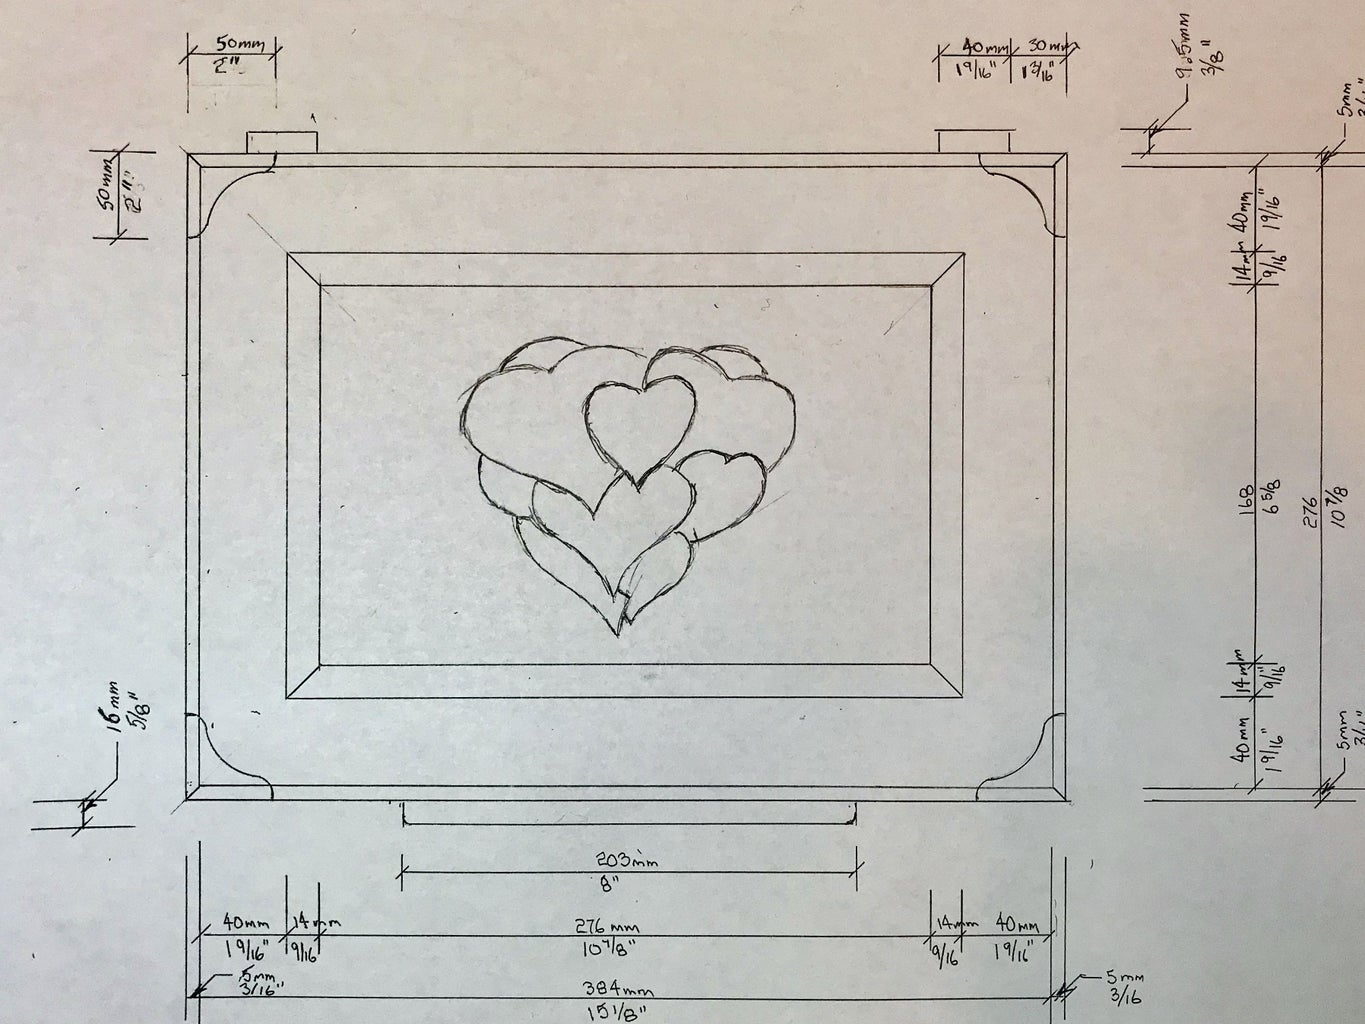 Drawings and Dimensions